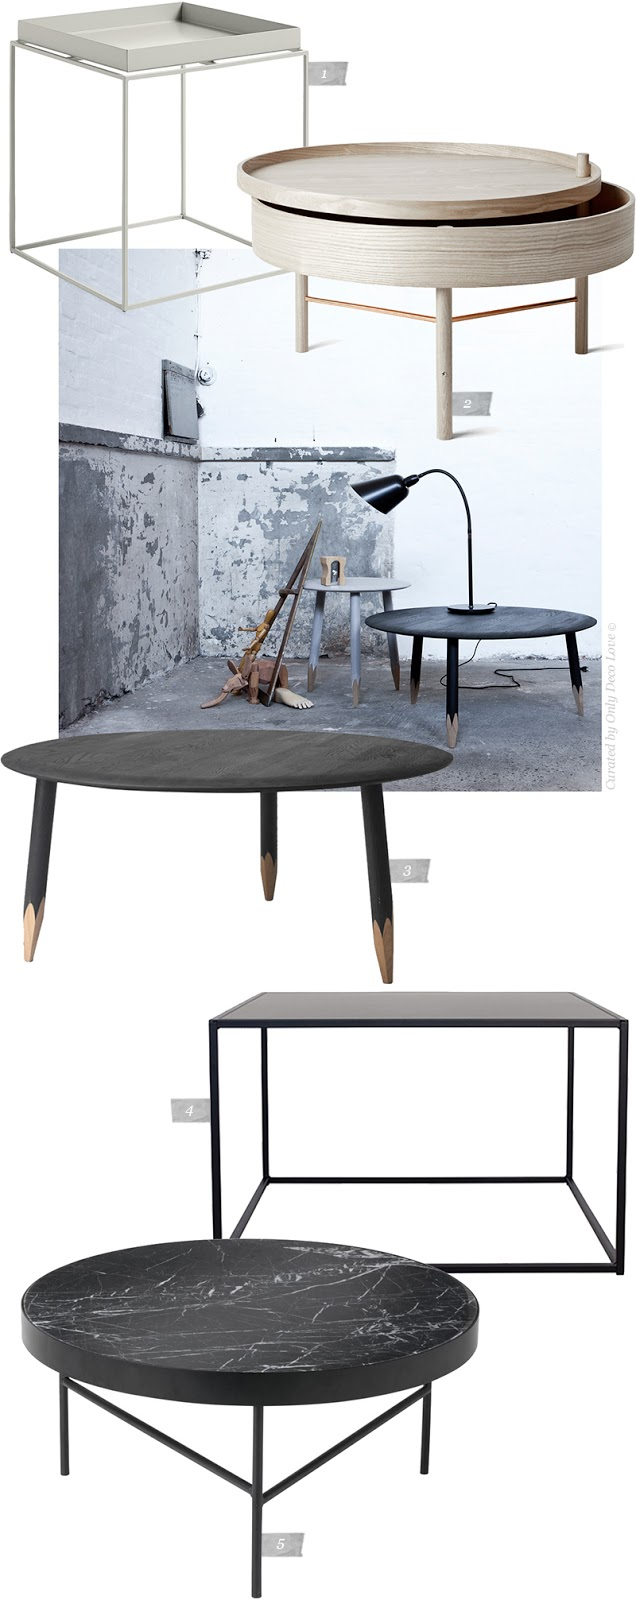 5 Designer Coffee Tables on my Mind